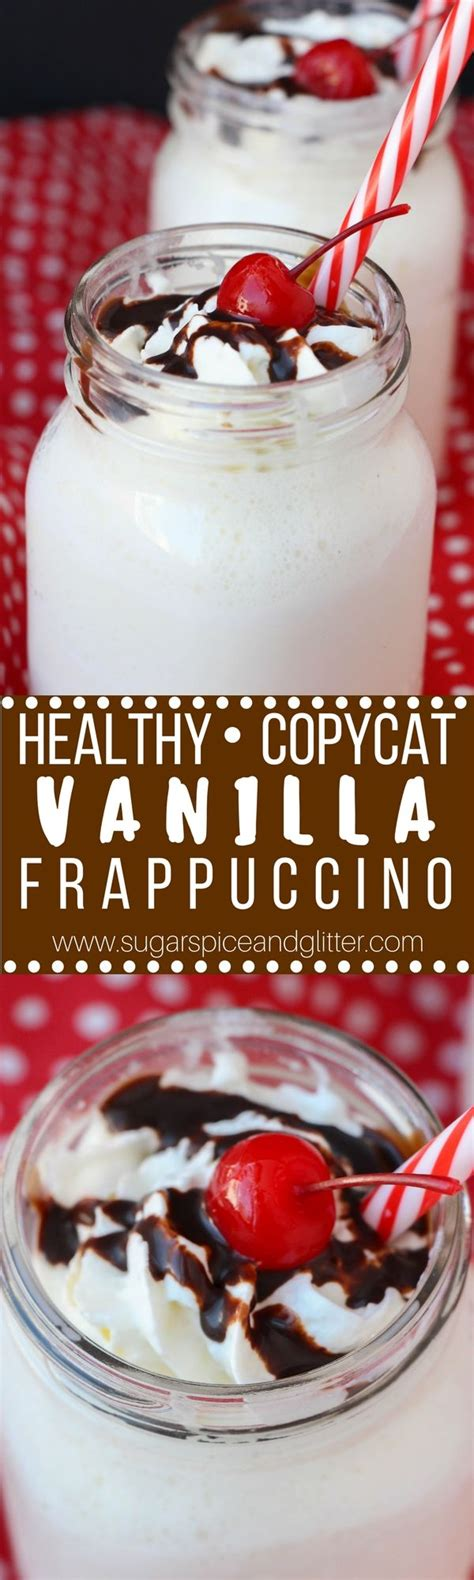 Pistachio coffee frappuccino® blended beverage. A healthy Starbucks copycat frappuccino - sugarfree with no artificial sweeteners, so you can ...